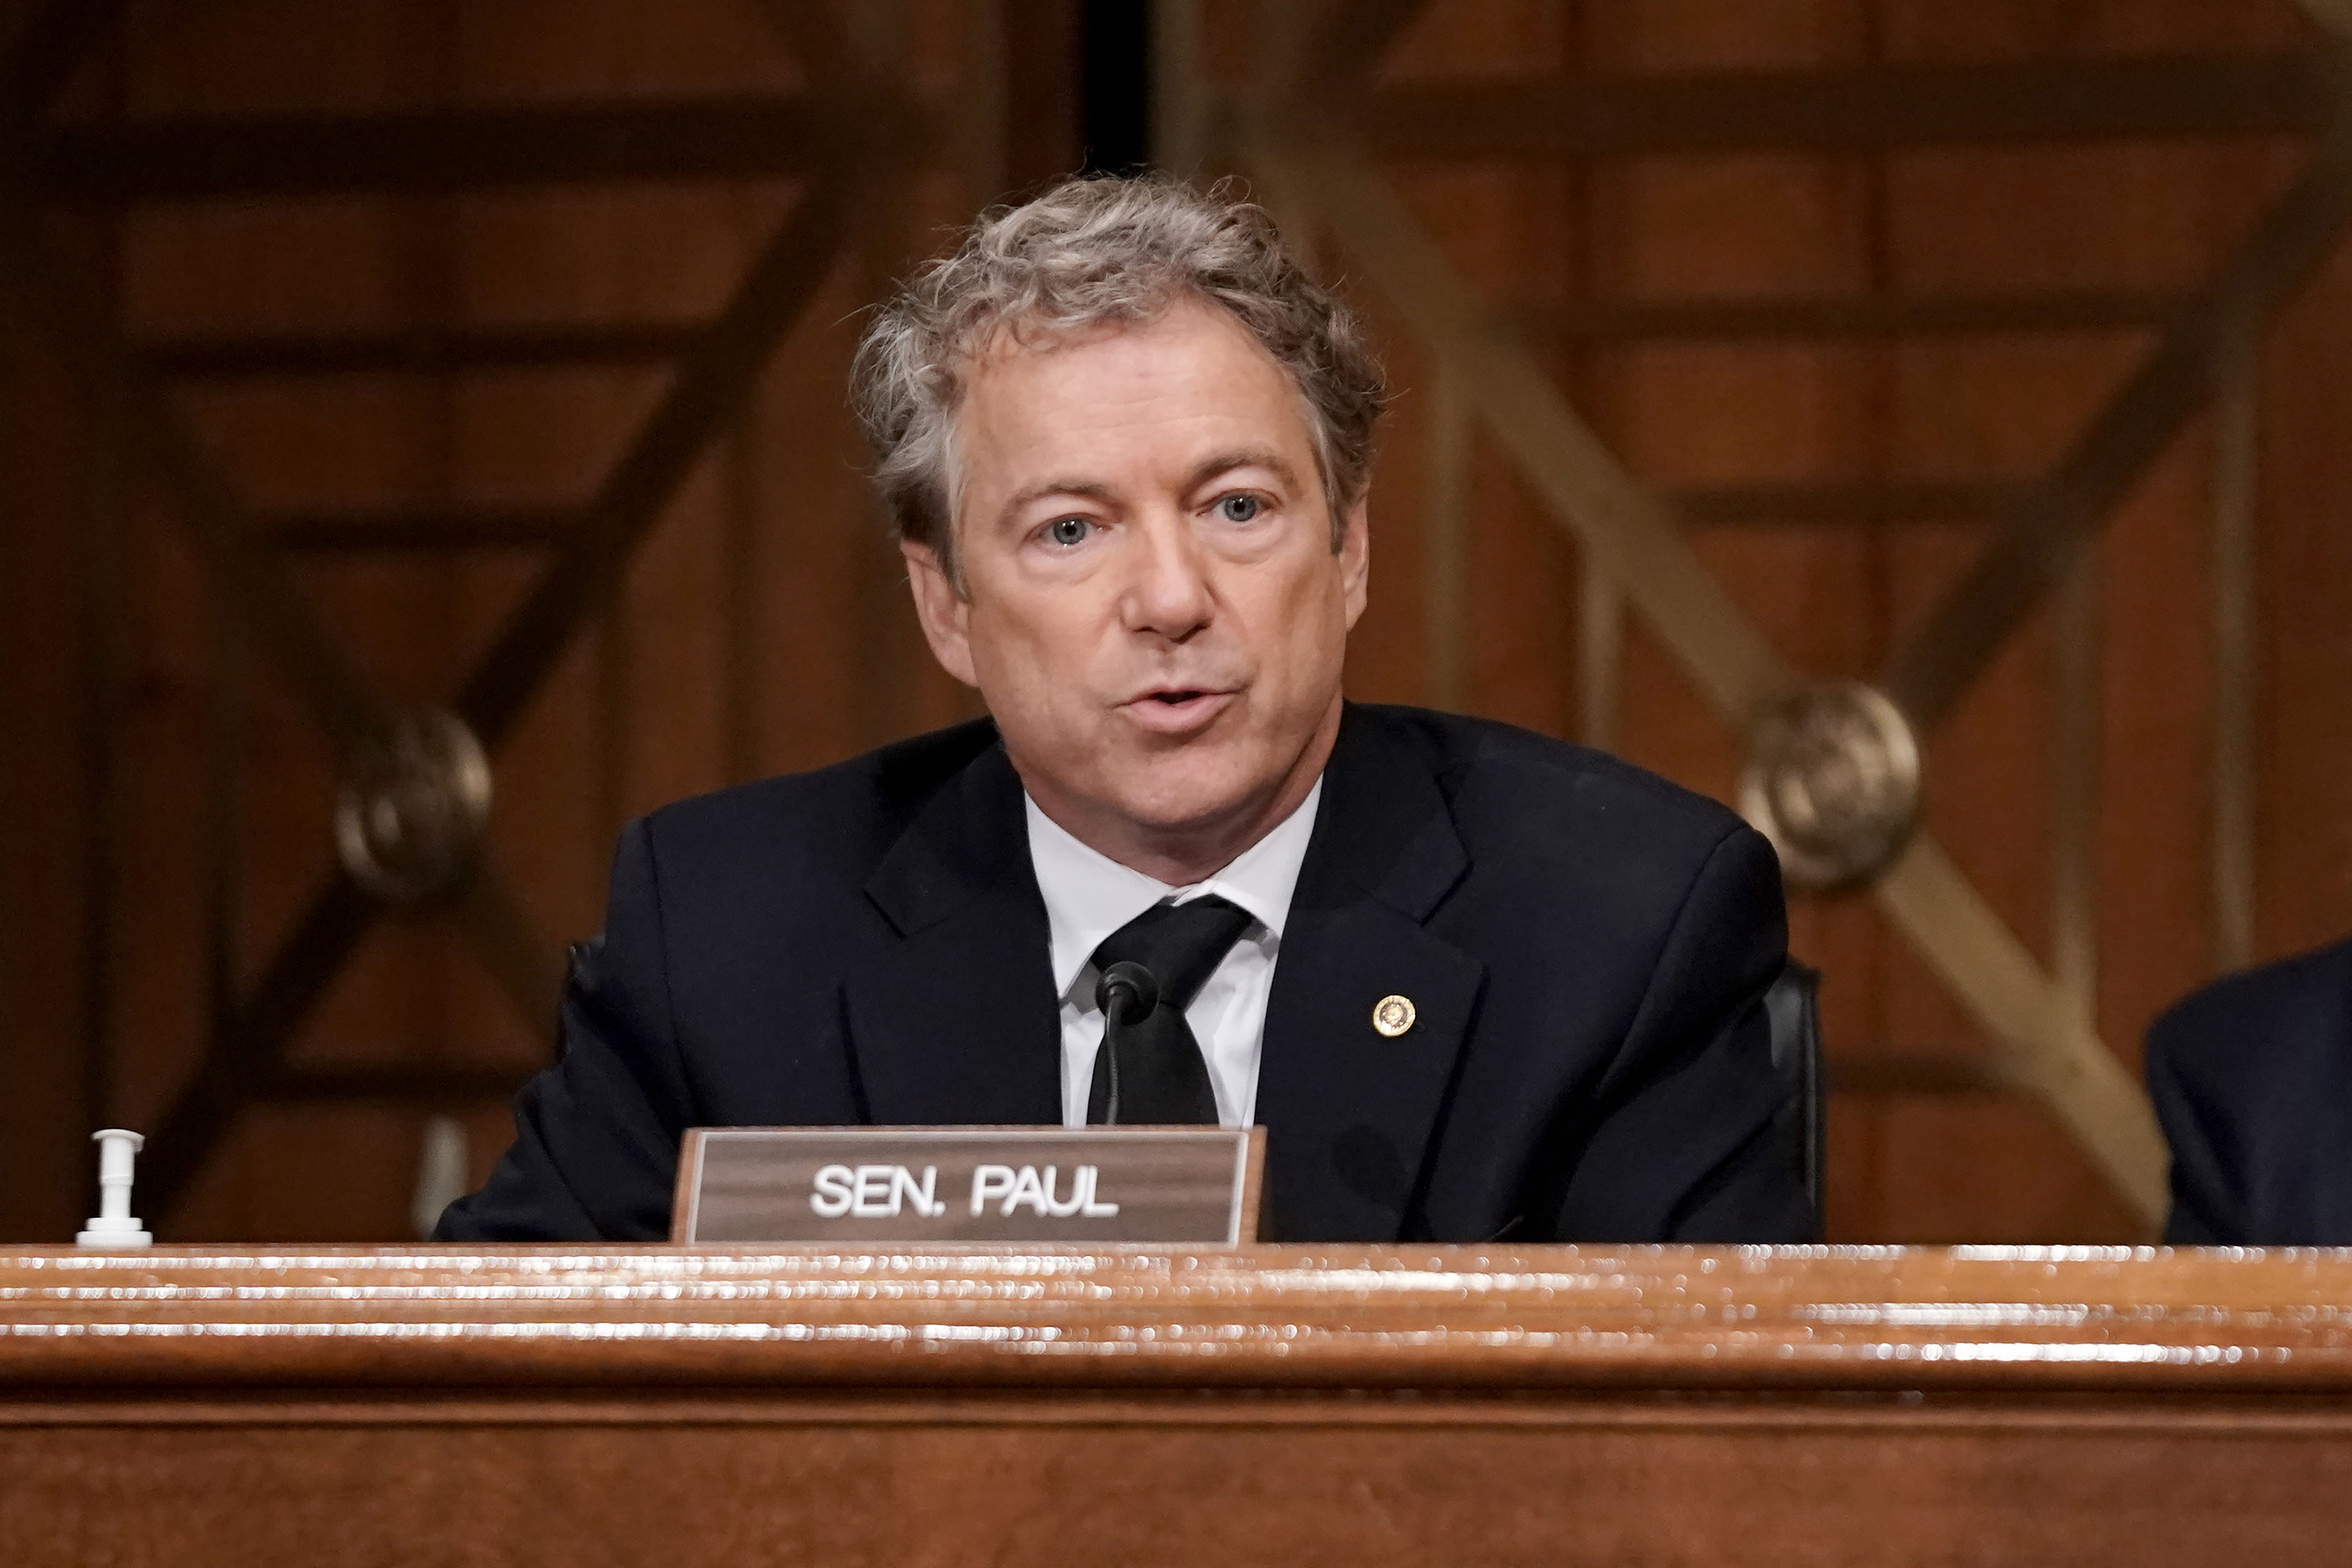 Sen. Rand Paul speaks during a hearing to discuss election security and the 2020 election process on December 16, 2020 in Washington, DC.